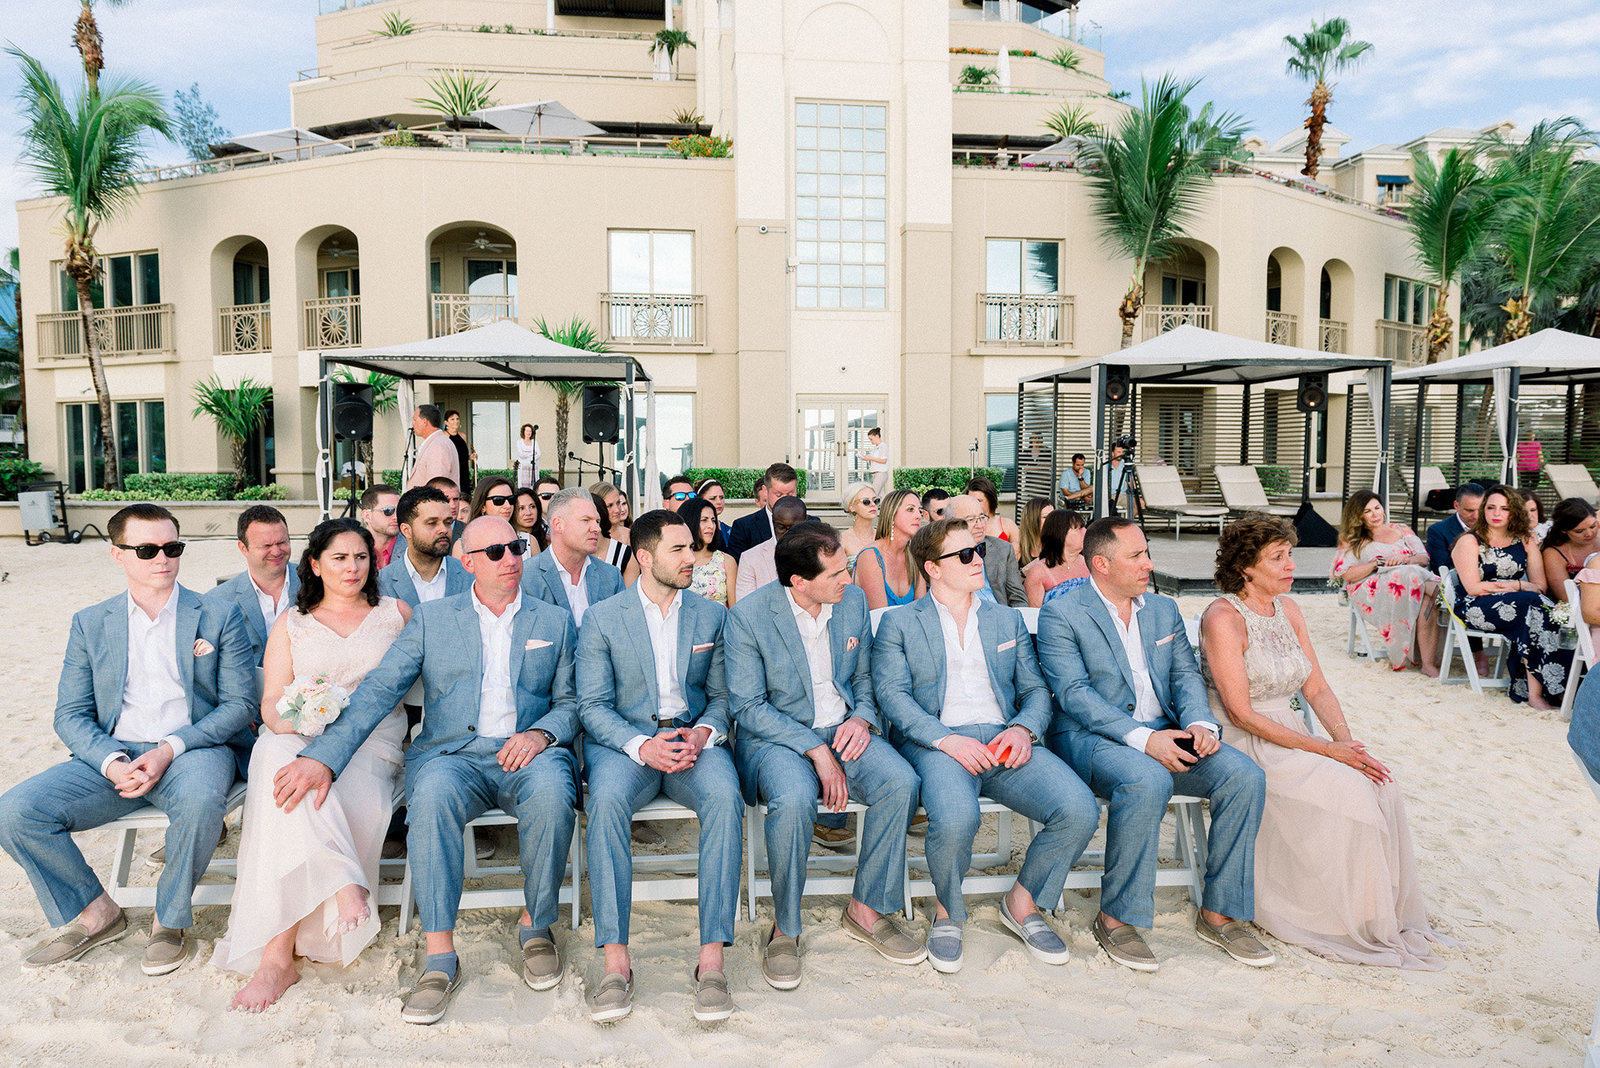 20180512-Pura-Soul-Photo-Ritz-Grand-Cayman-Wedding-87